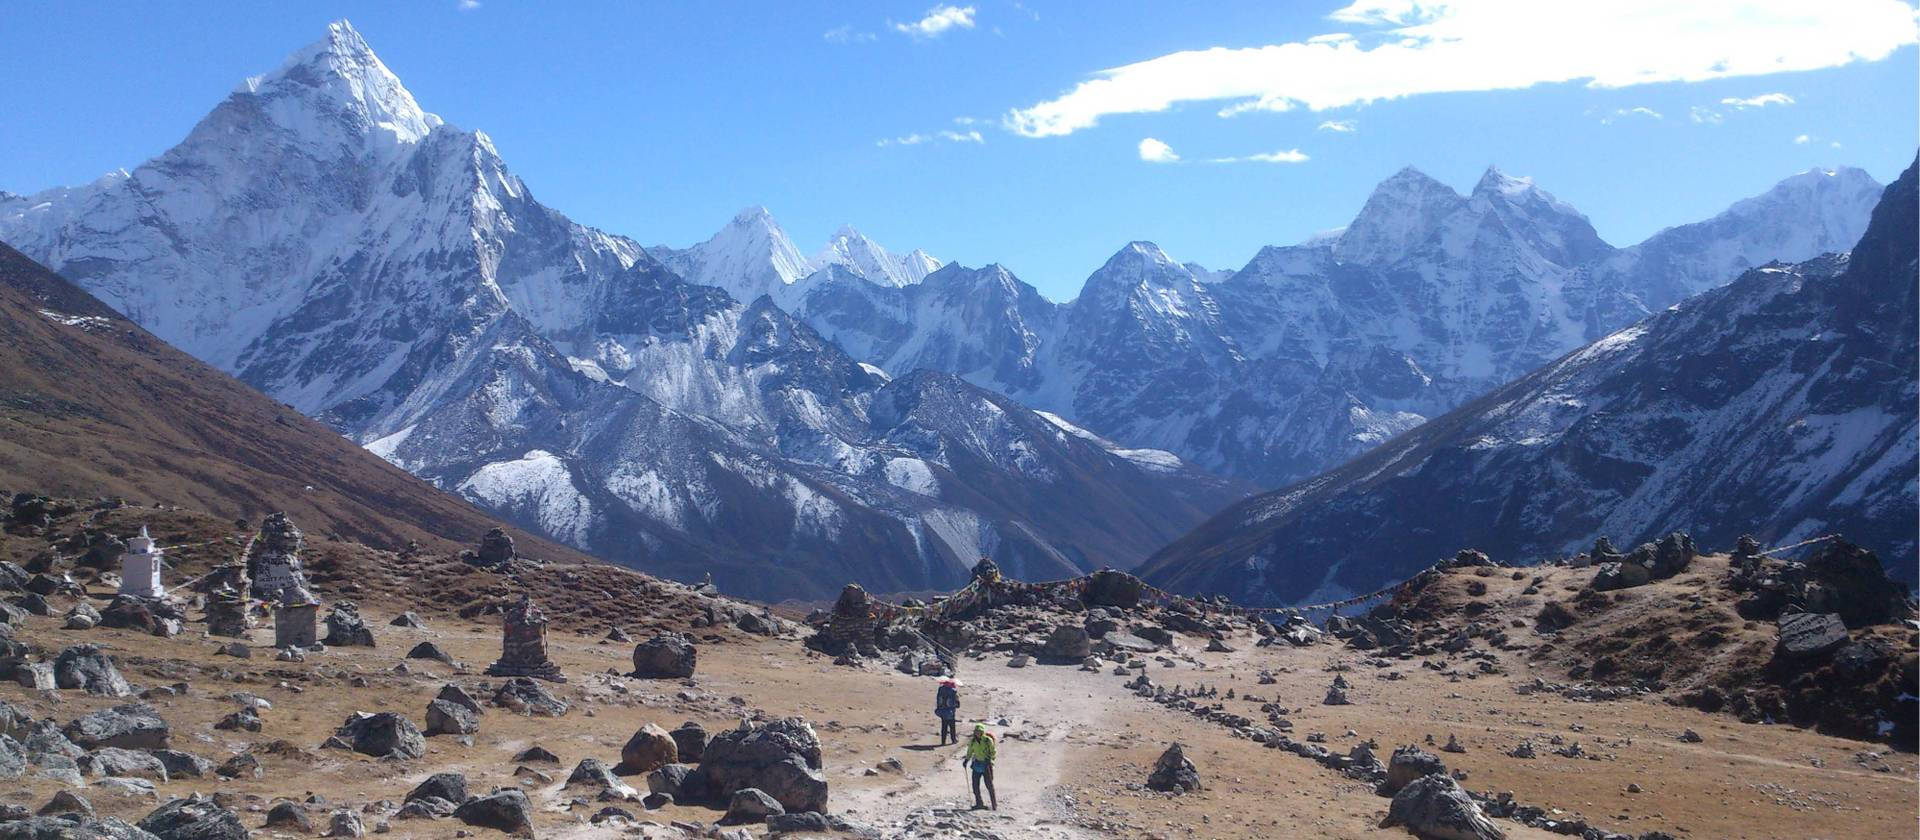 Going back down from Everest Base Camp  1bf985baeae7d